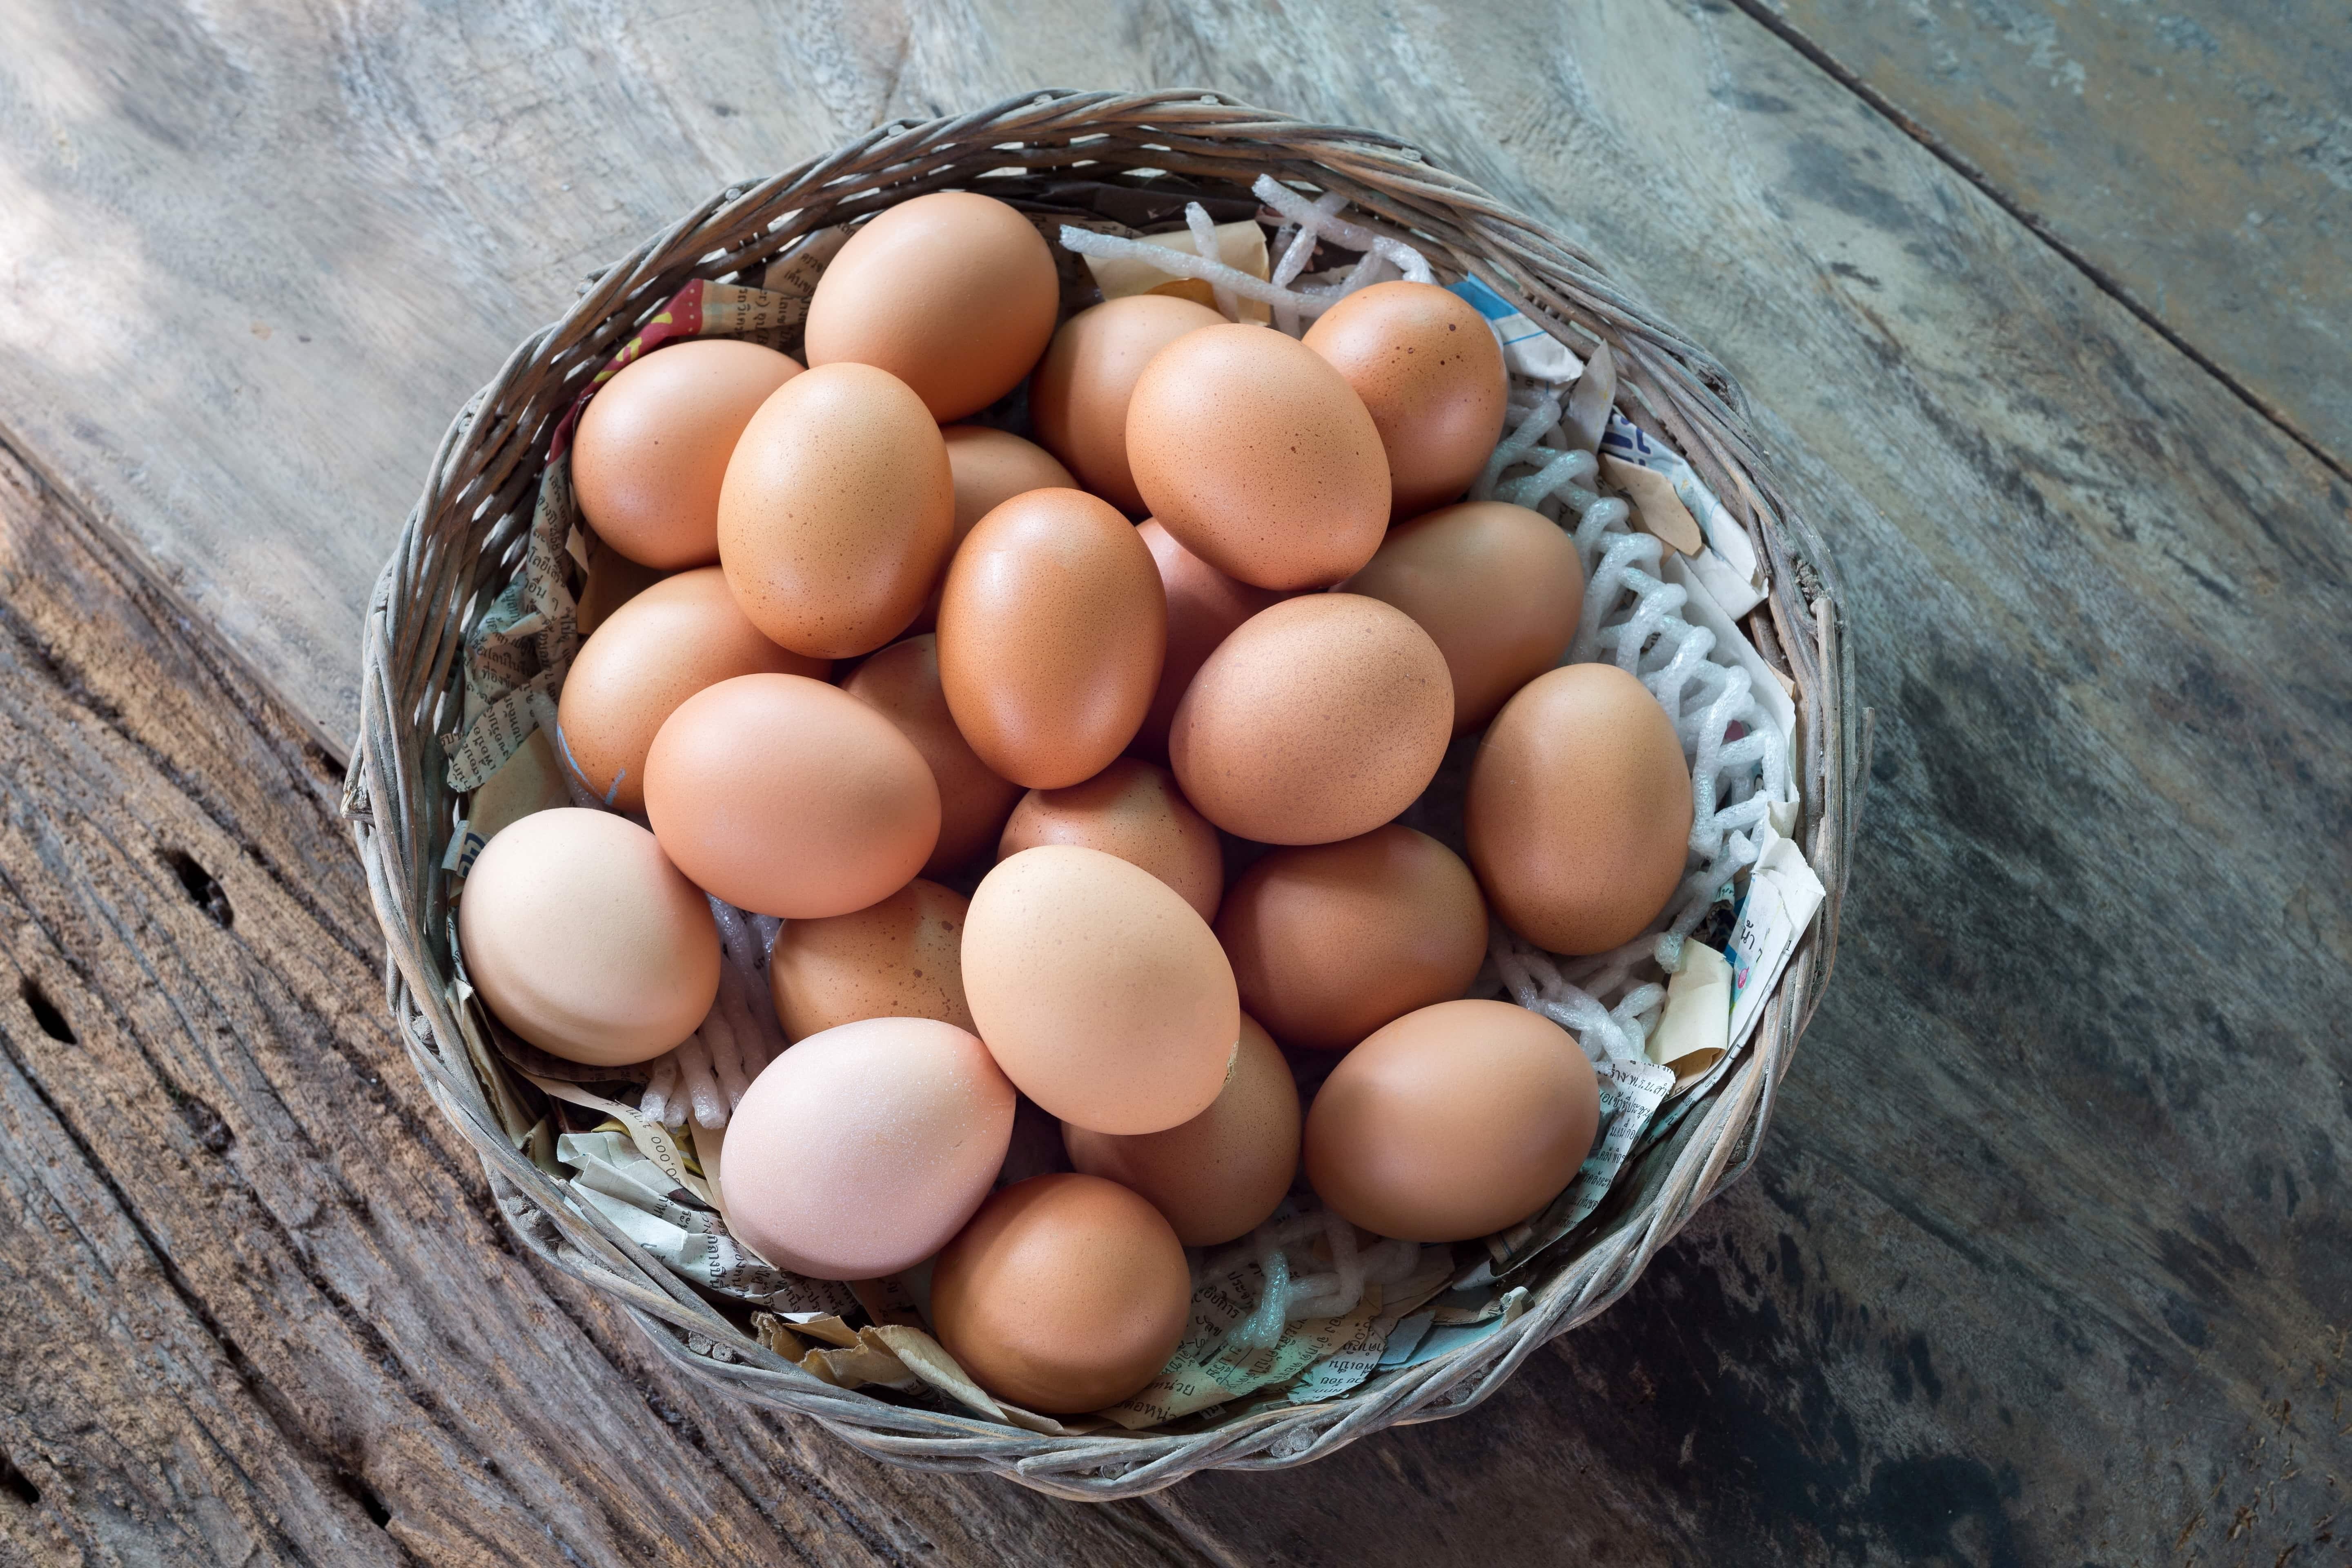 Fipronil & Imported Eggs - The Latest News